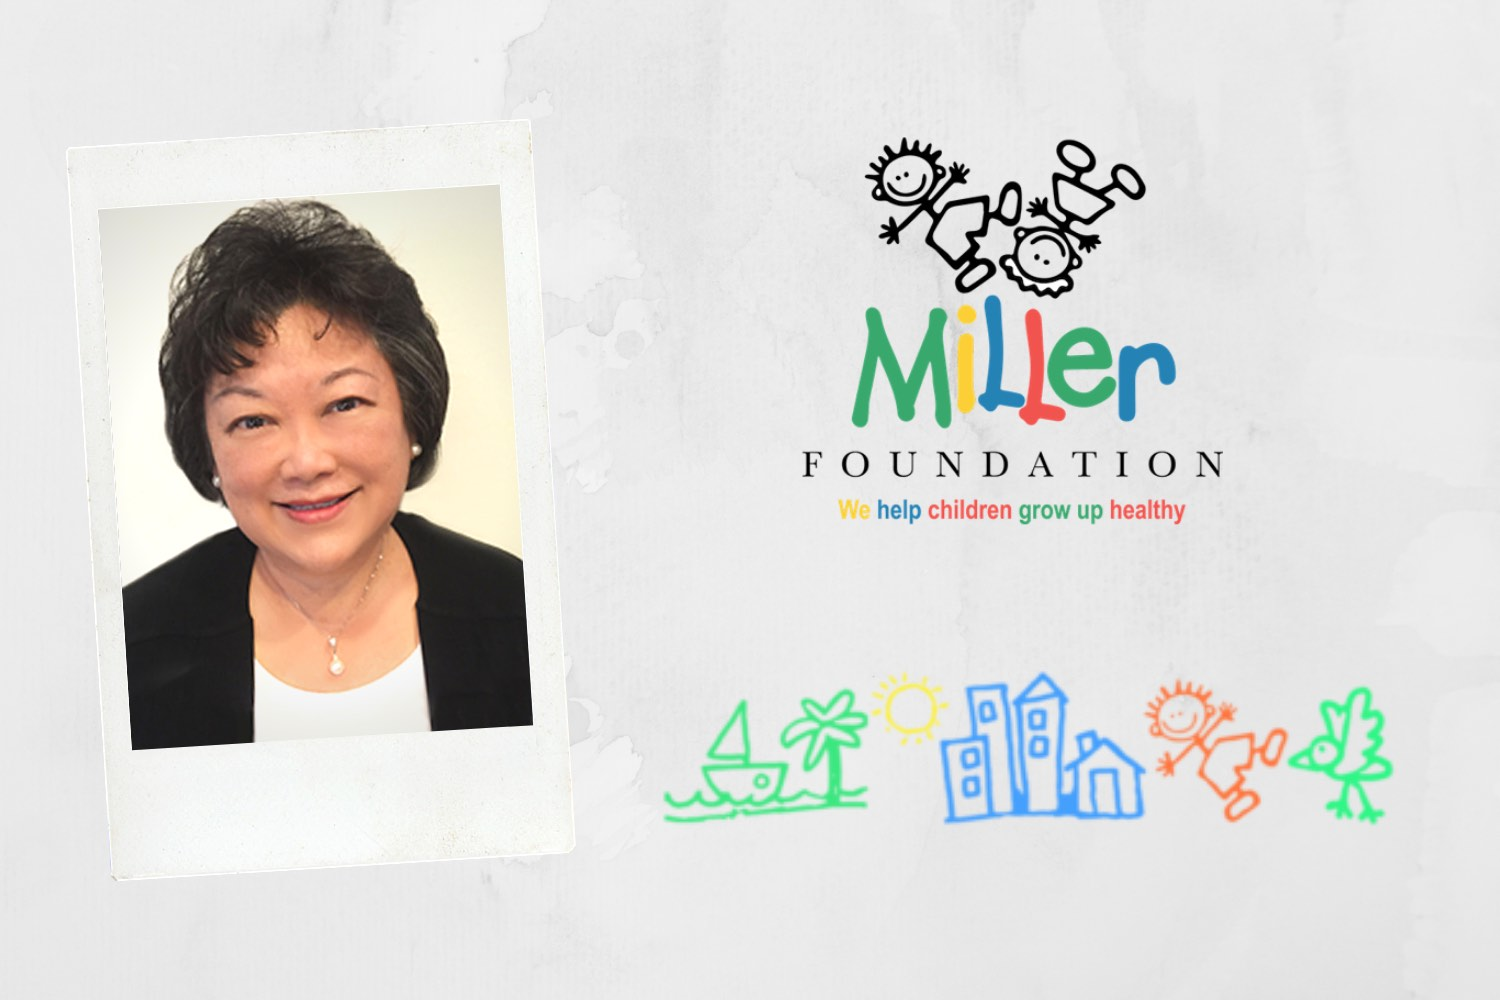 New Miller Foundation Trustee Annette Kashiwabara